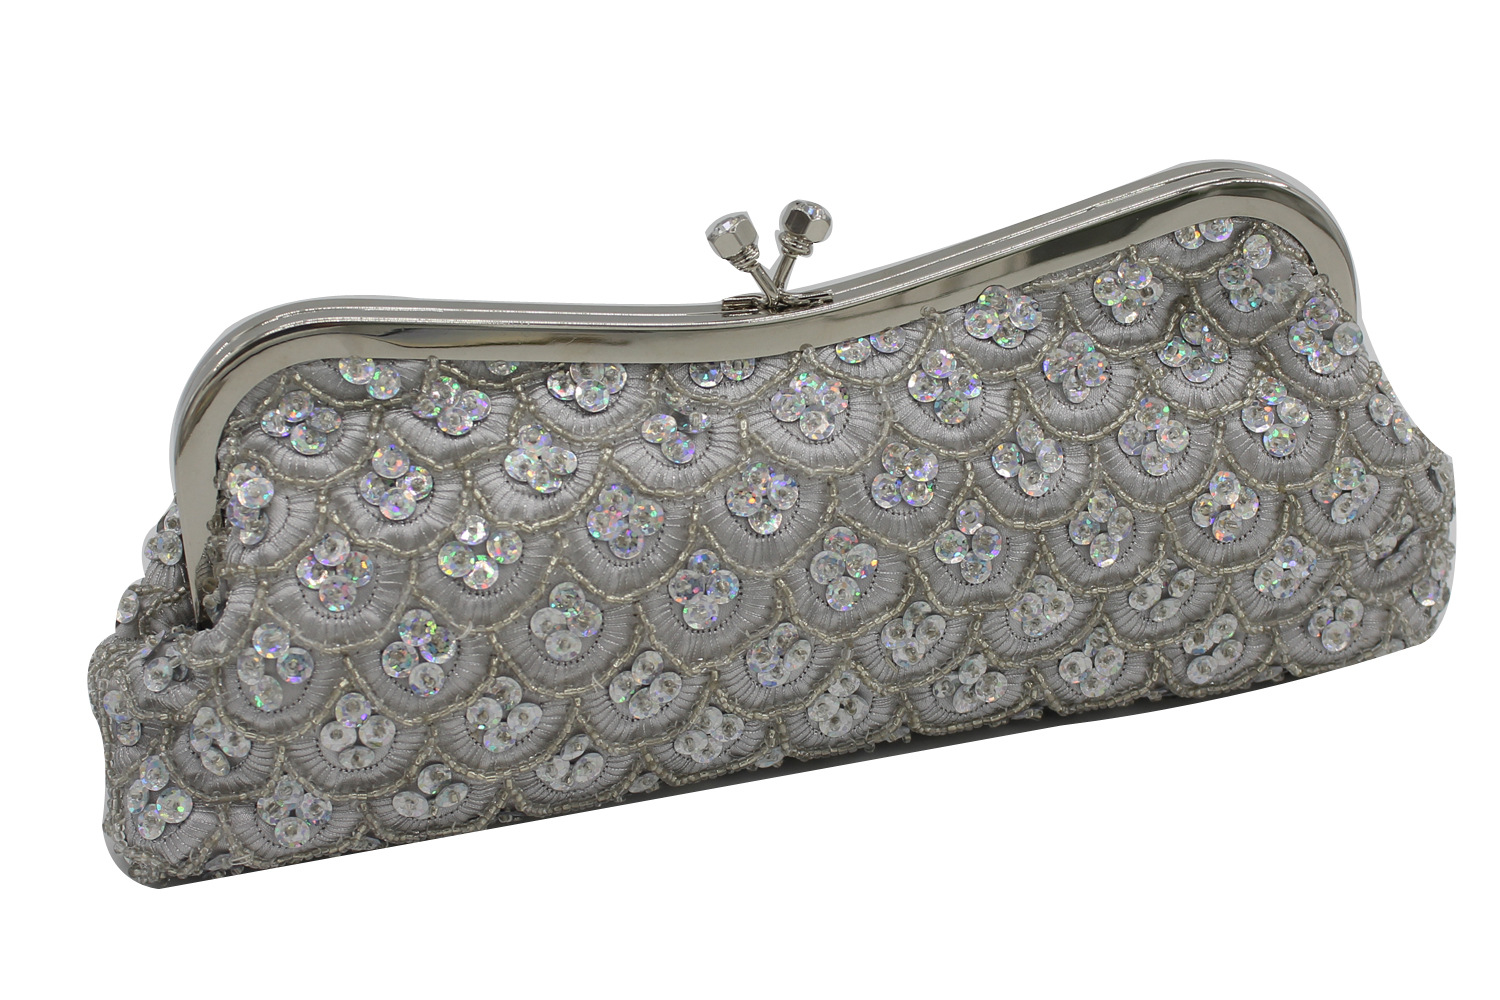 The New Women Clutch Evening Bags Beads Embroidered Bride Cheongsam For Party Day Clutches Ladies Hand Bag<br>